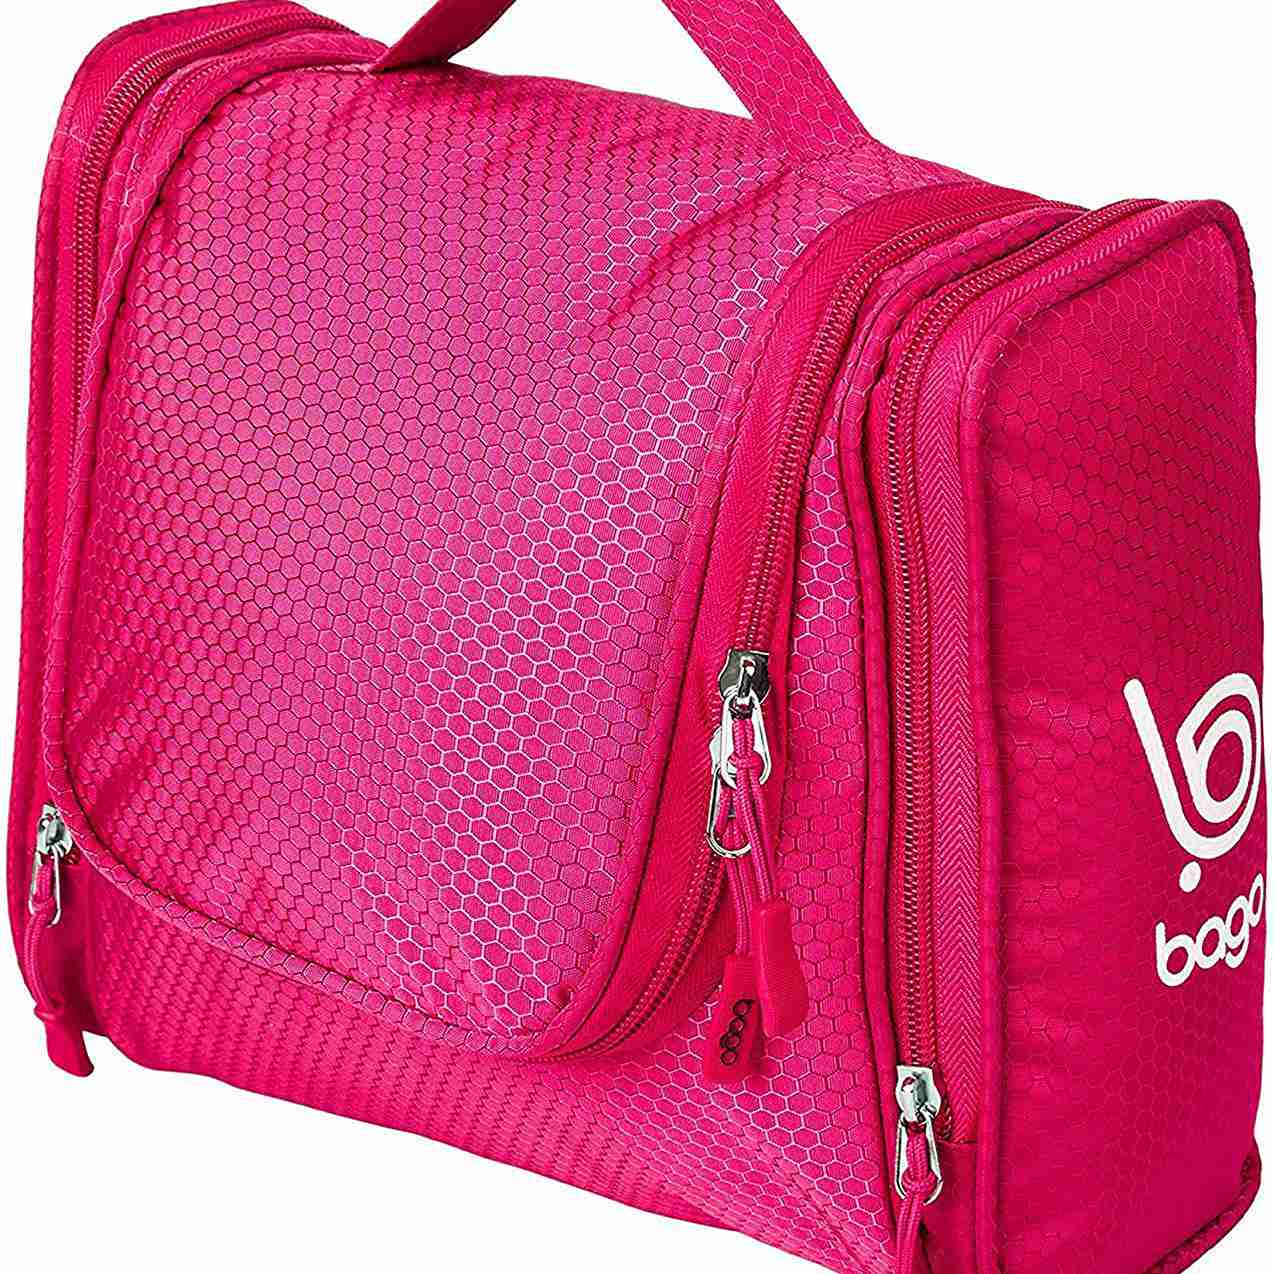 37b1cf03e1 Bago Hanging Toiletry Bag For Men   Women - Toiletries   Shave Travel  Organizer